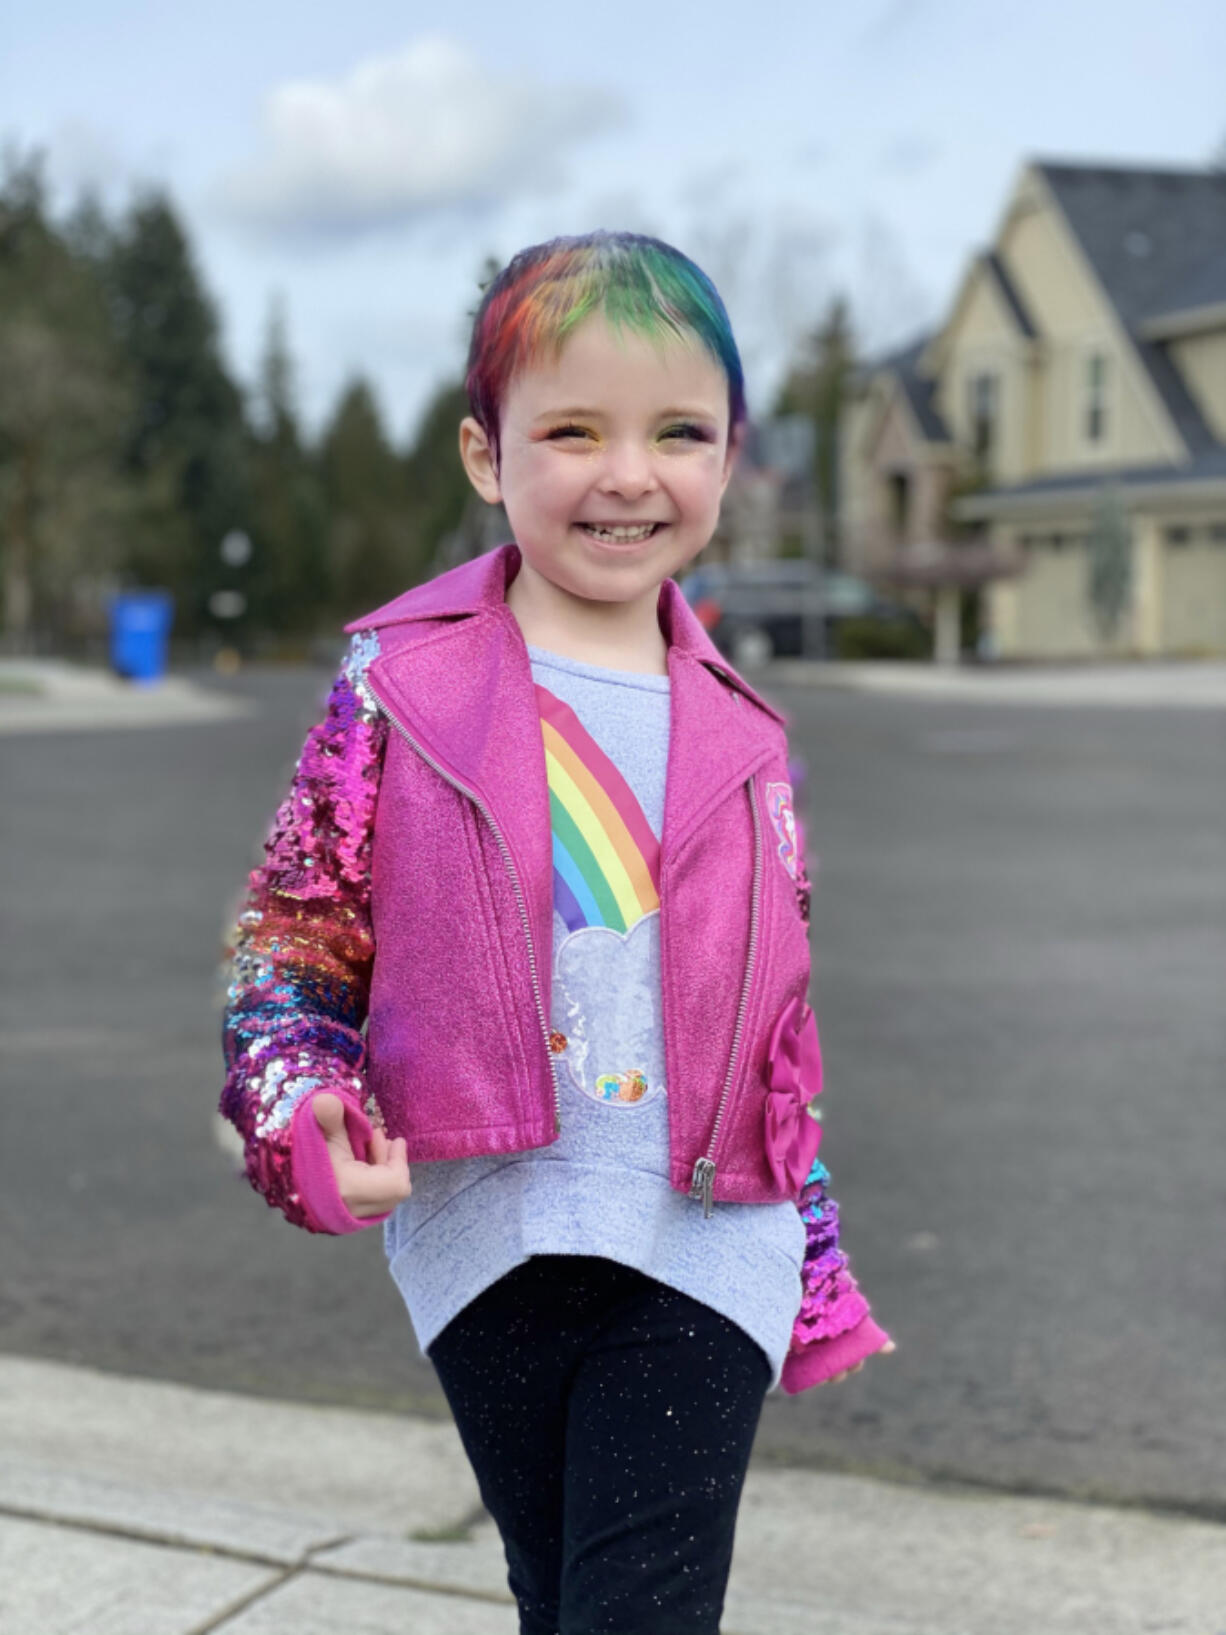 RIDGEFIELD: Olivia Sexton, who has a rare blood disorder, is raising funds through Make-A-Wish Oregon so others like her can have their wishes come true.